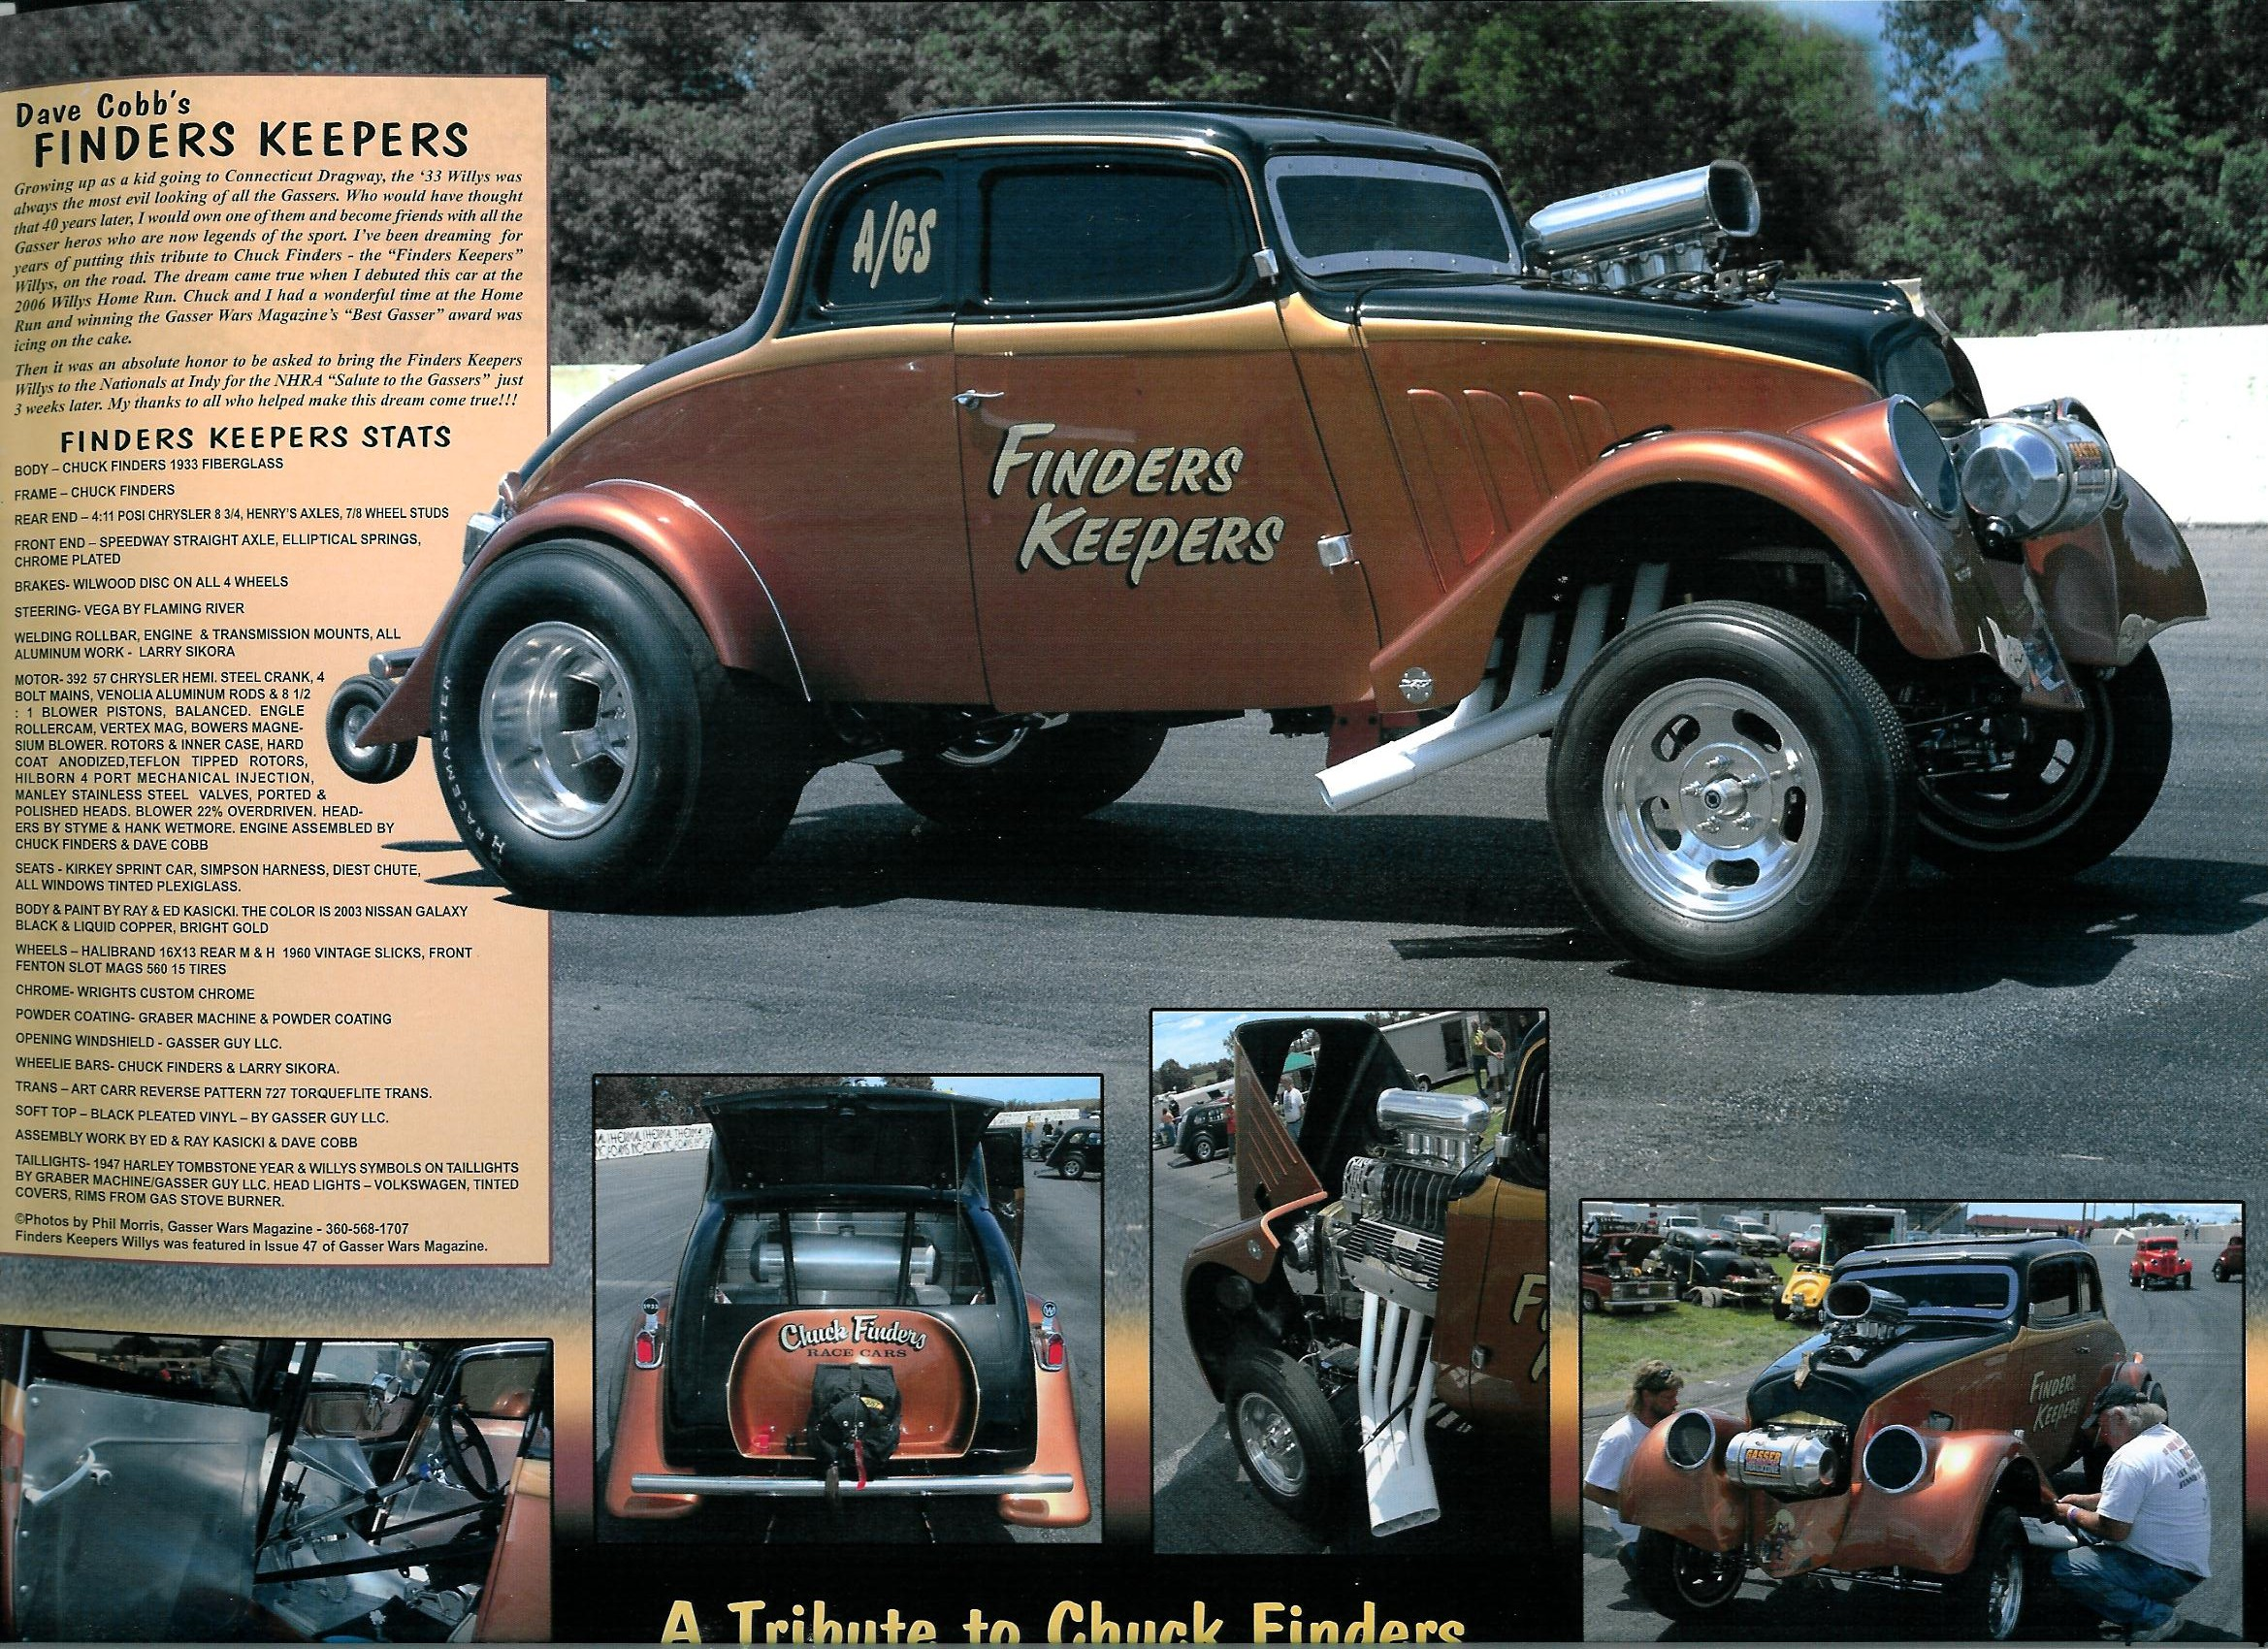 Click image for larger version  Name:finders hero card 001.jpg Views:131 Size:1.31 MB ID:60611